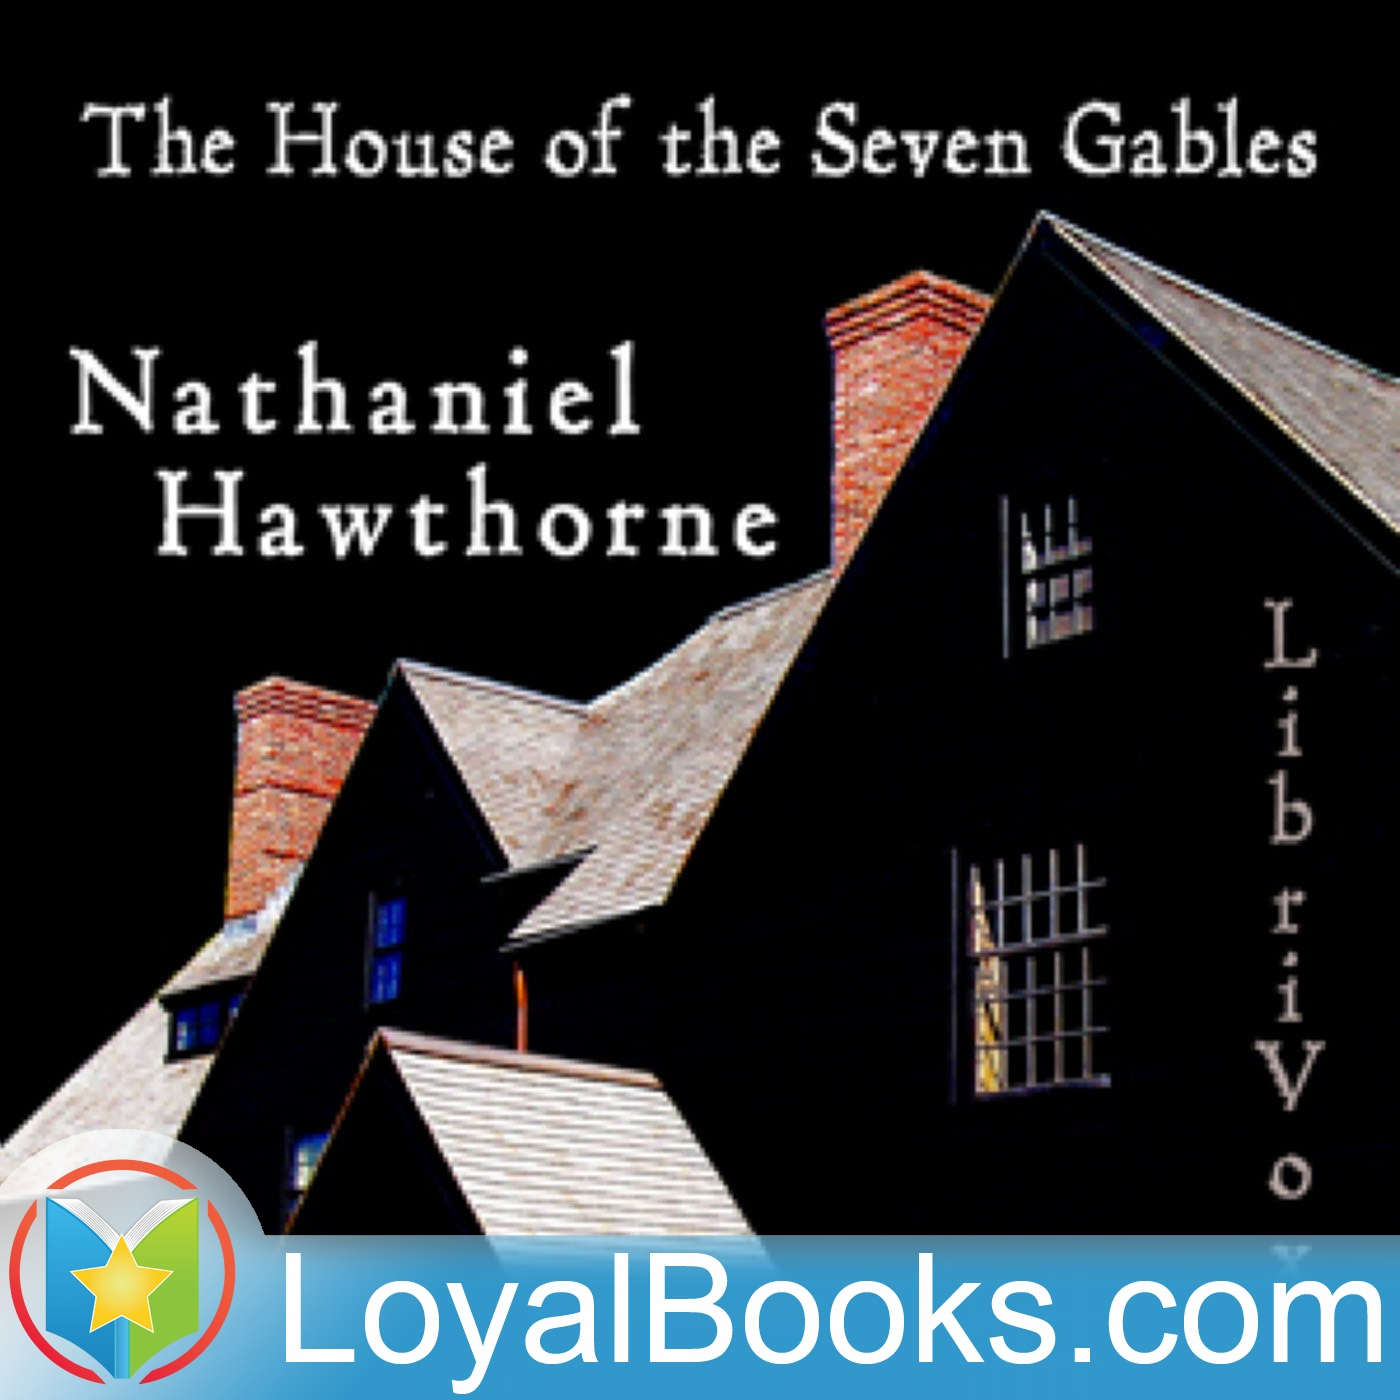 <![CDATA[The House of the Seven Gables by Nathaniel Hawthorne]]>